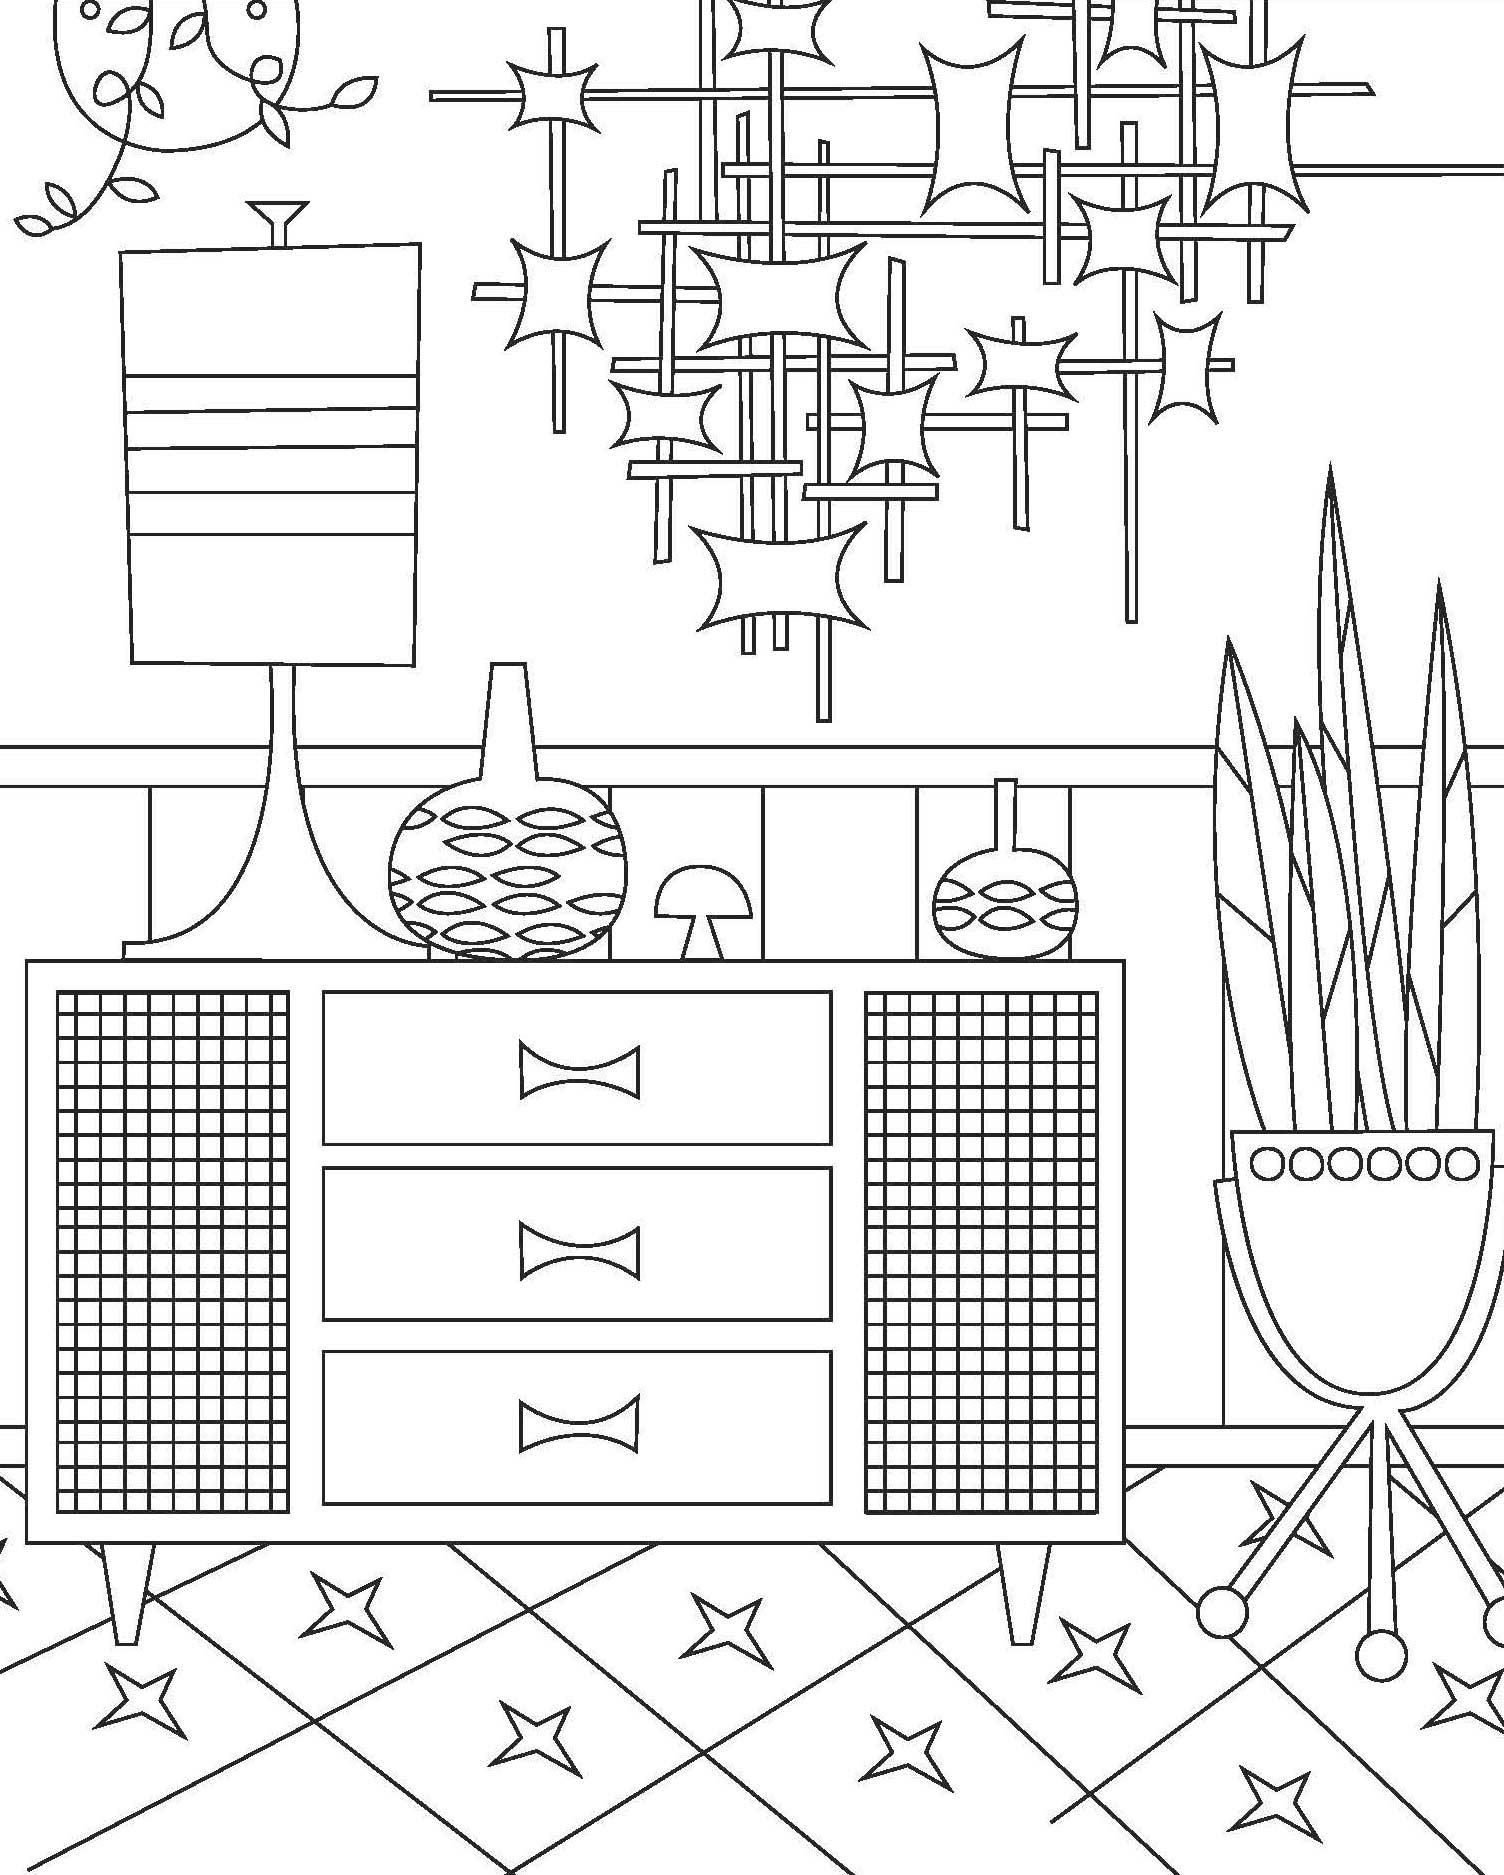 Jenn Ski Coloring Pages For Adults